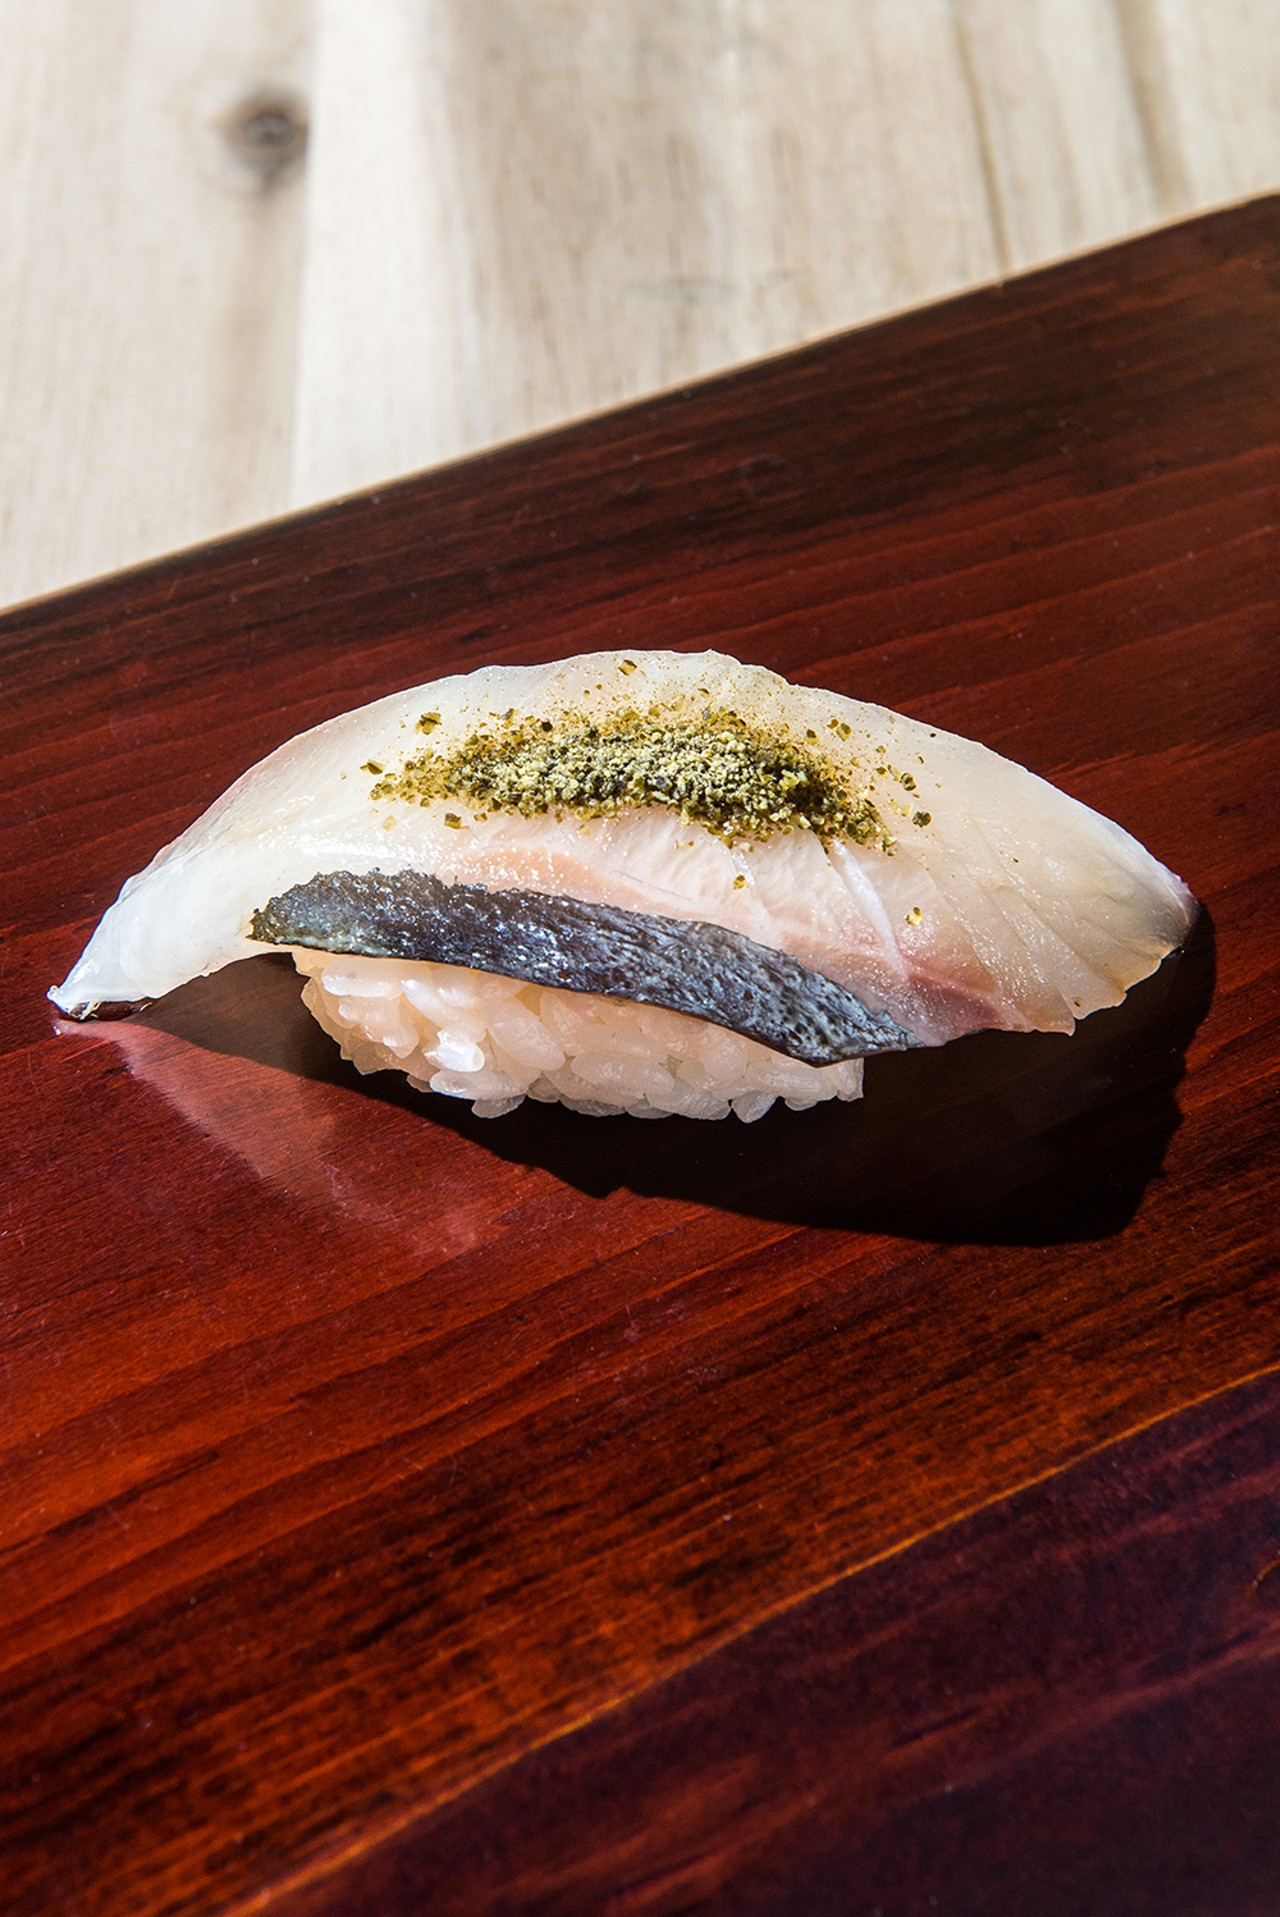 Omakase Yume Sets A New Bar For Chicago Restaurant